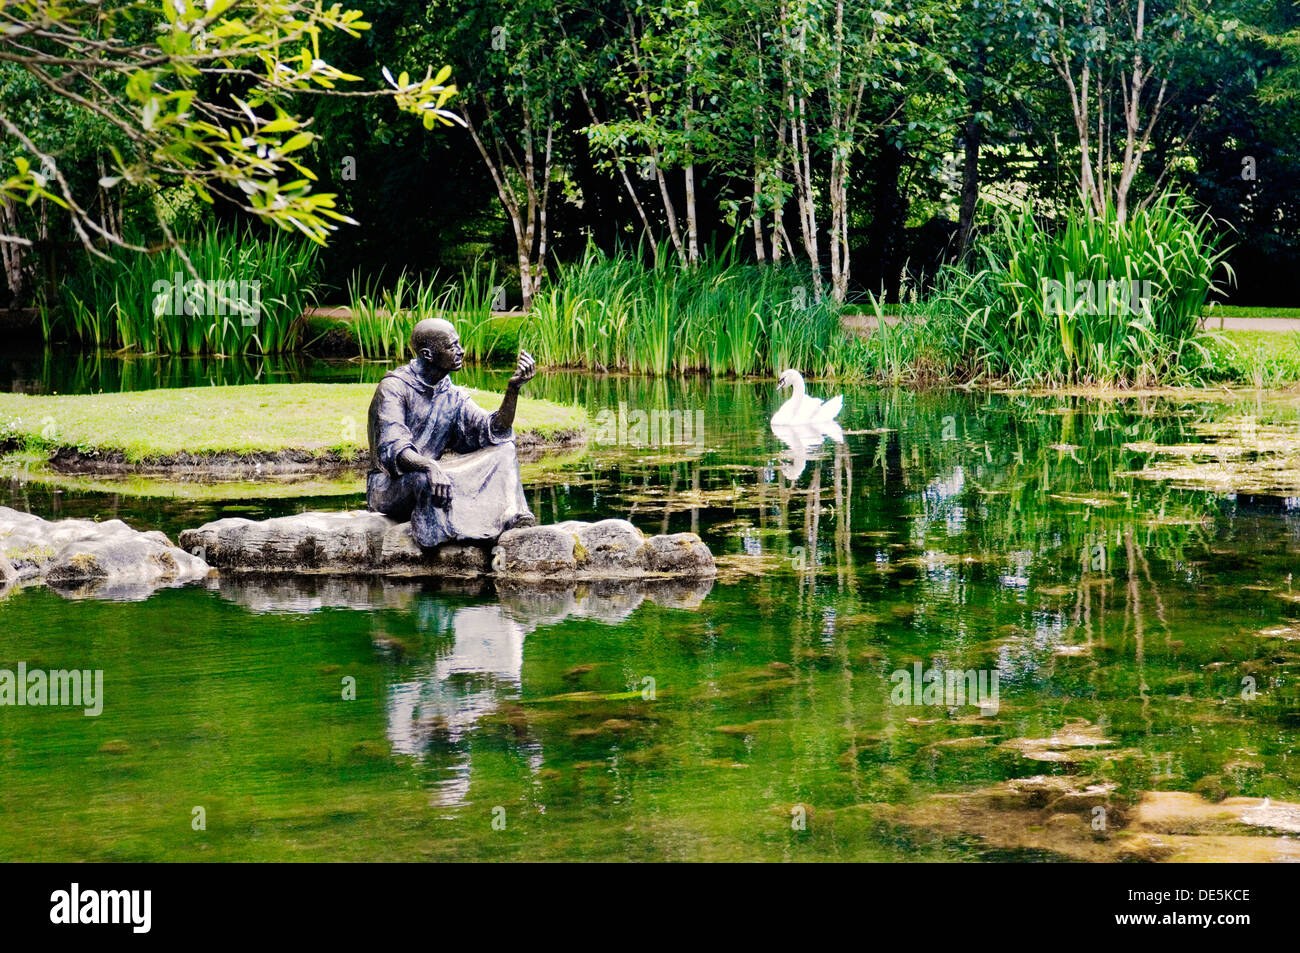 St. Fiachra's Garden, beside the Japanese Gardens in the grounds of the Irish National Stud at Tully, Kildare, Ireland - Stock Image